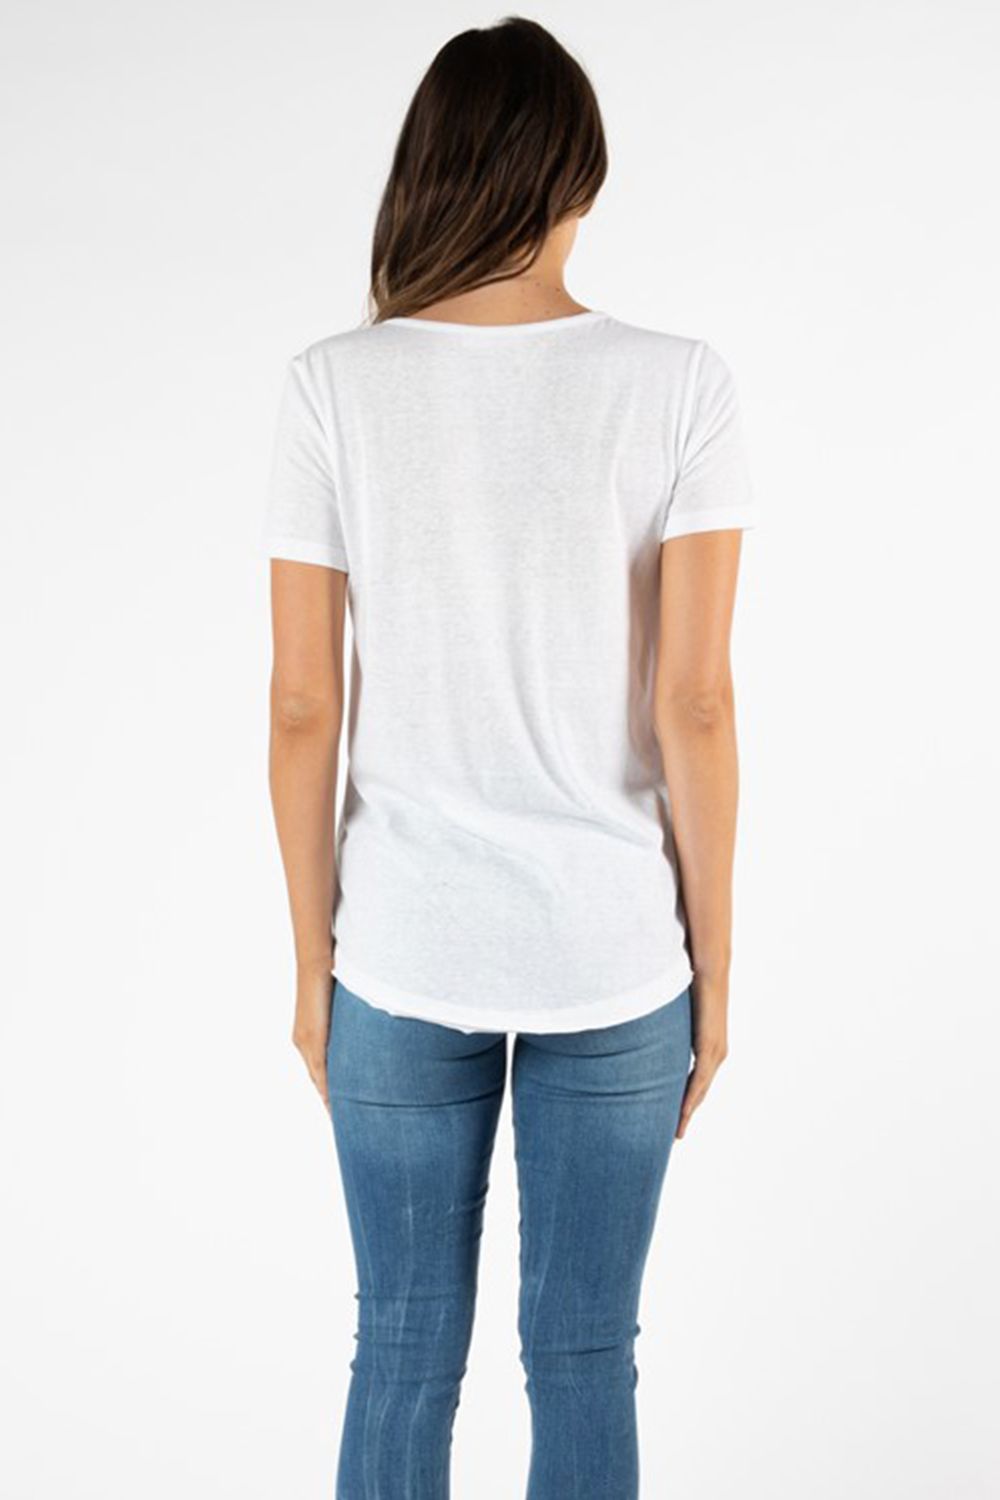 Denver Tee by Betty Basics - White